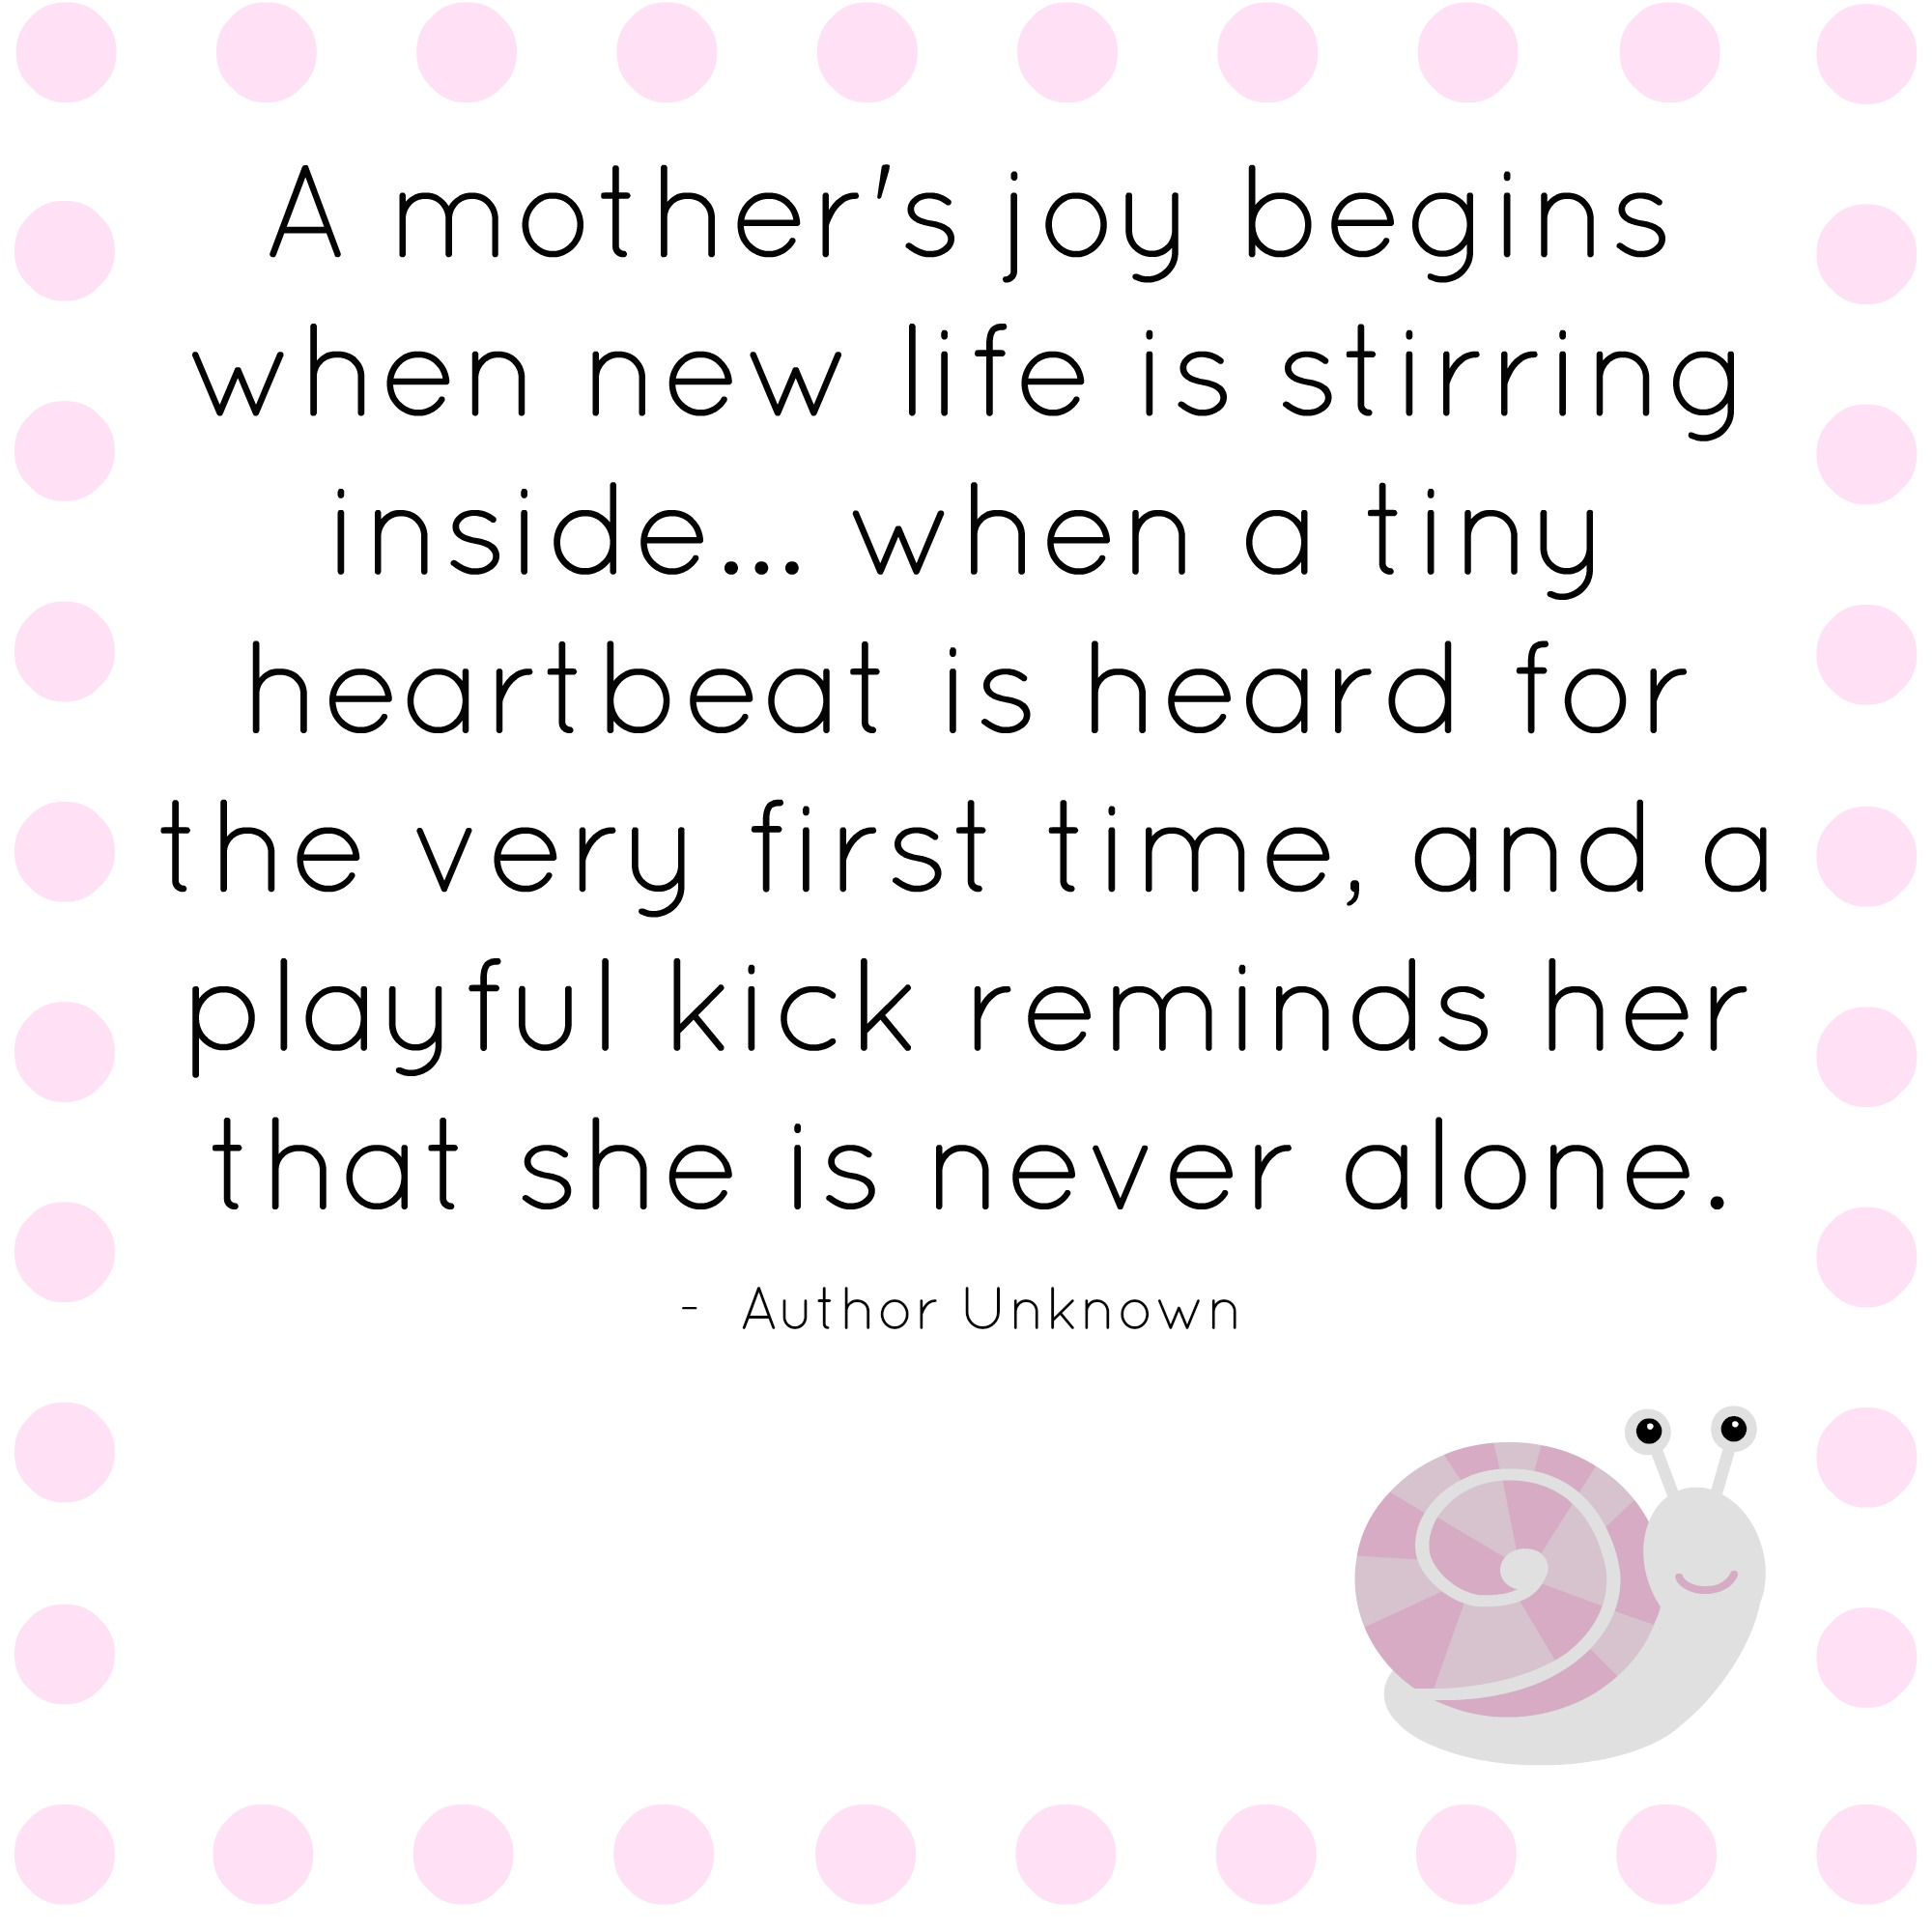 Cute Baby Quote Images: Cute Expecting Baby Quotes. QuotesGram